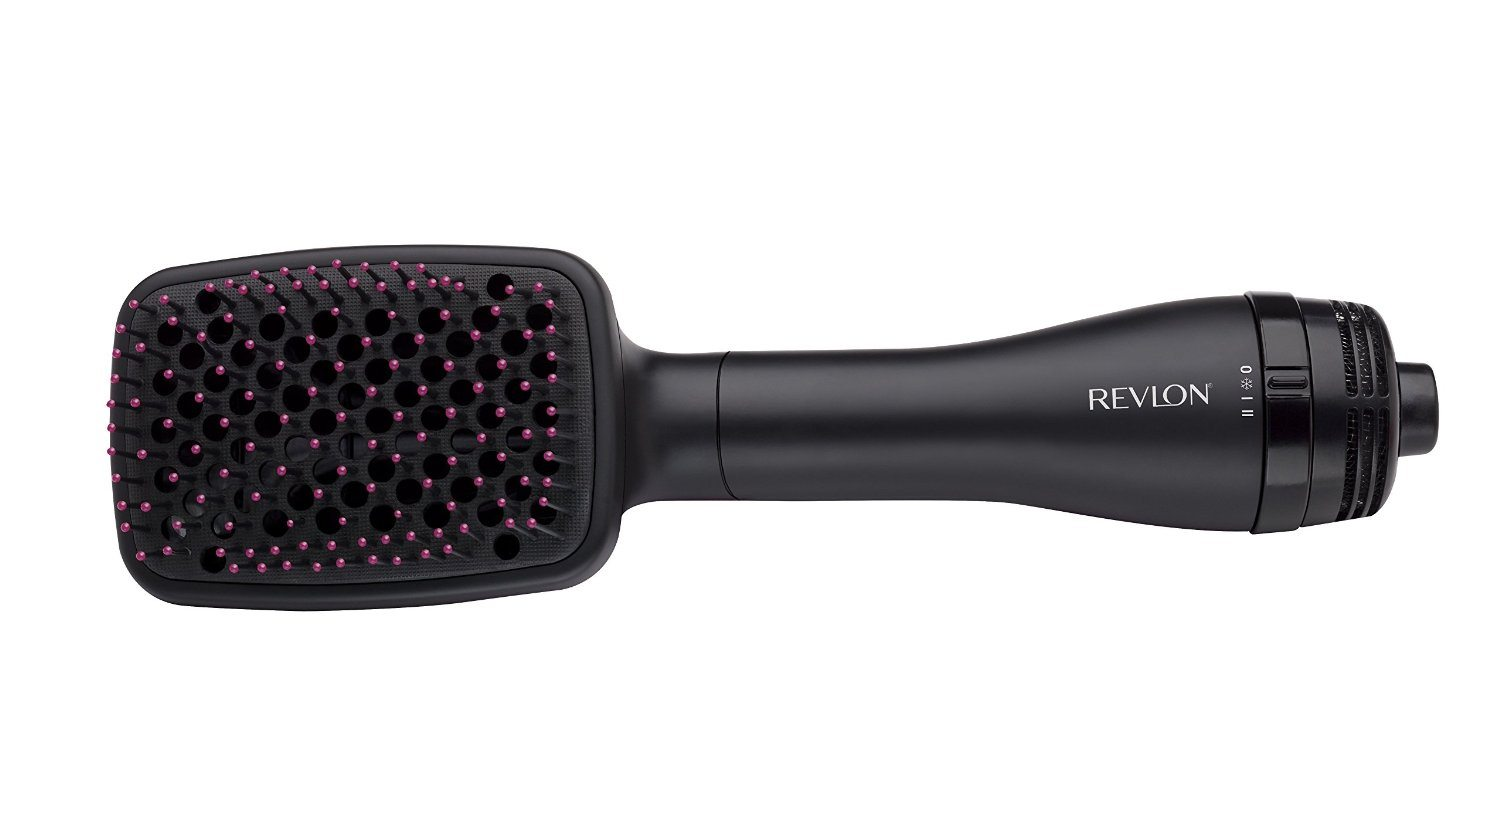 avis revlon perfectionist une brosse soufflante de qualit. Black Bedroom Furniture Sets. Home Design Ideas